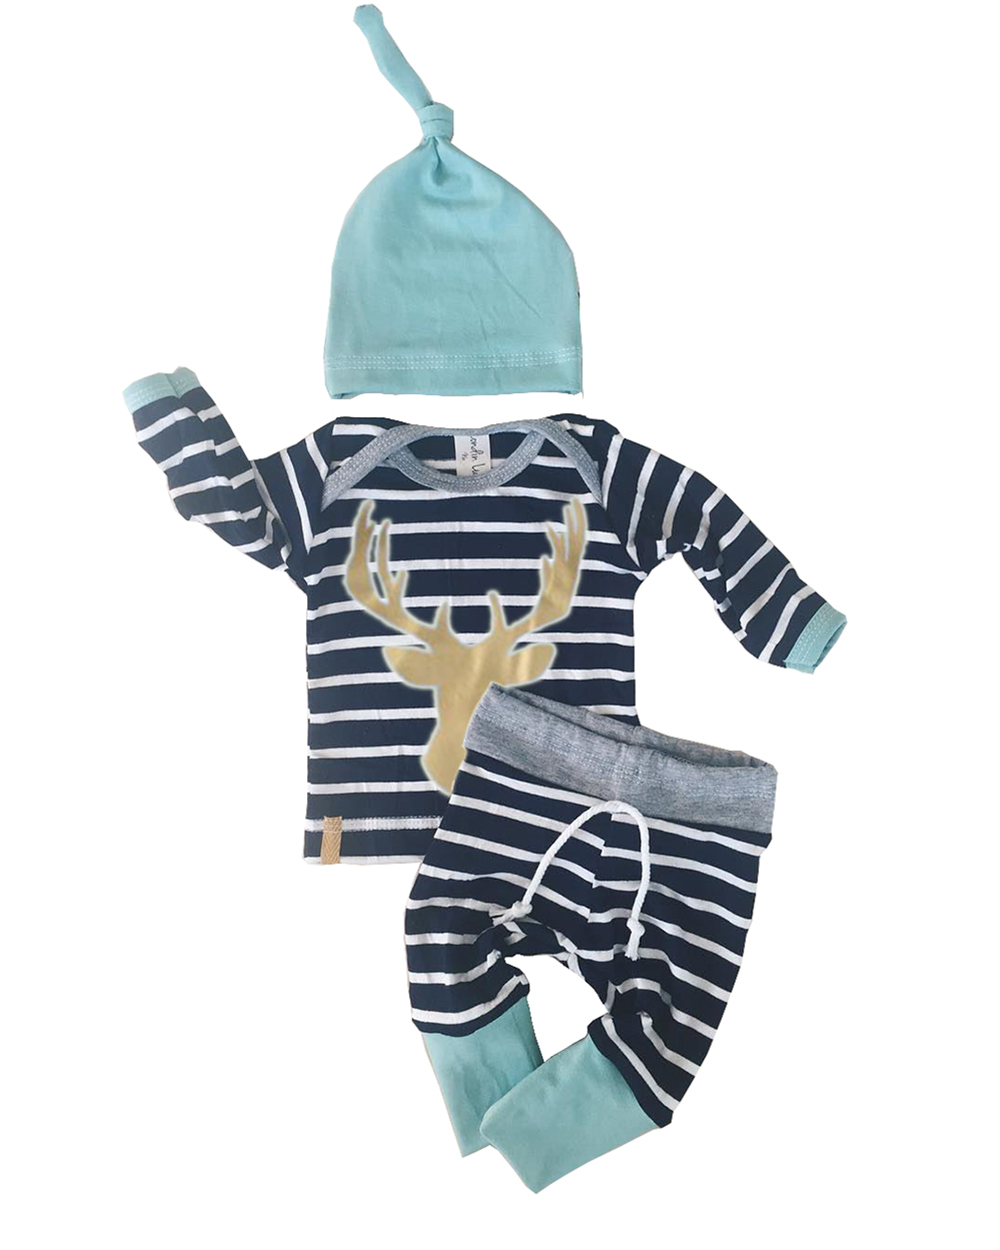 цена на 2017 New Newborn Bebes Baby Boy Girl Clothes Long Sleeve Striped Tops Pants Hat 3PCS Outfits Set Baby Clothing For Newborns